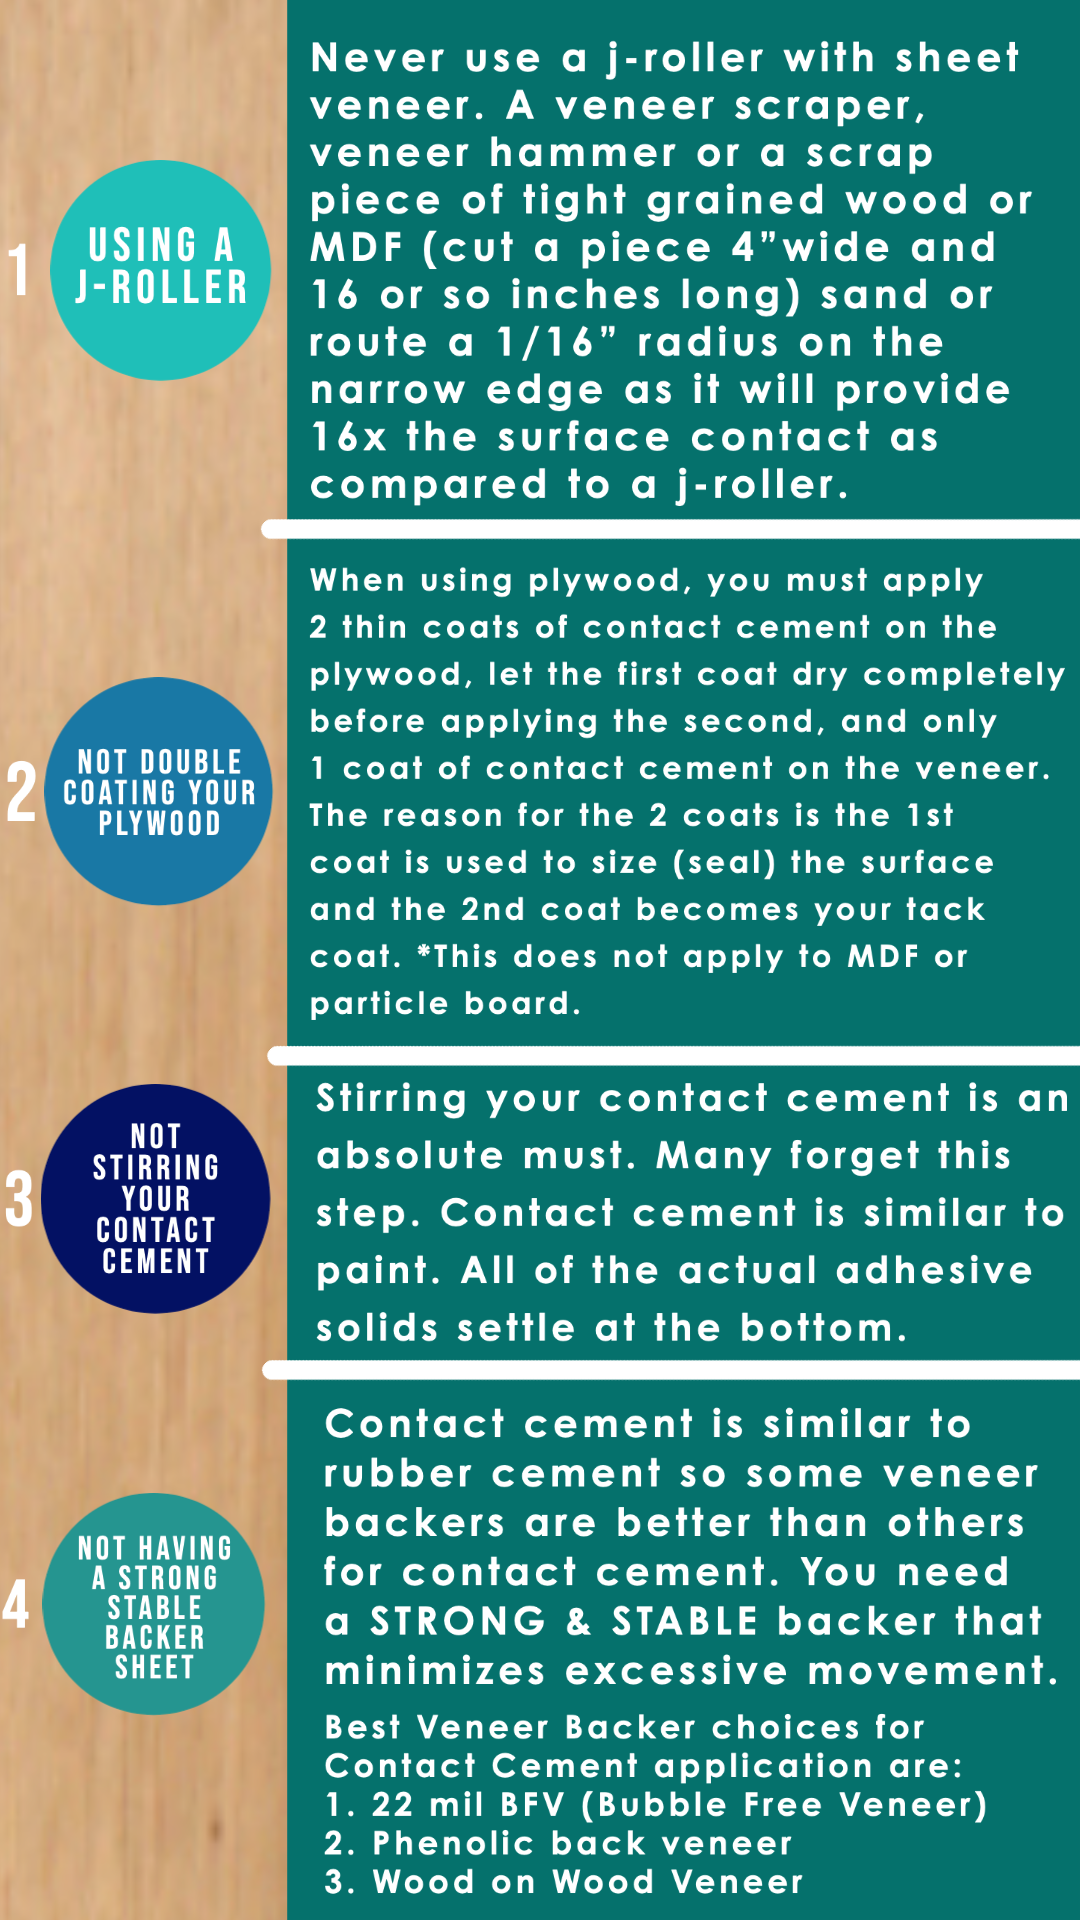 4-biggest-mistakes-contact-cement-pt-2-copy.png